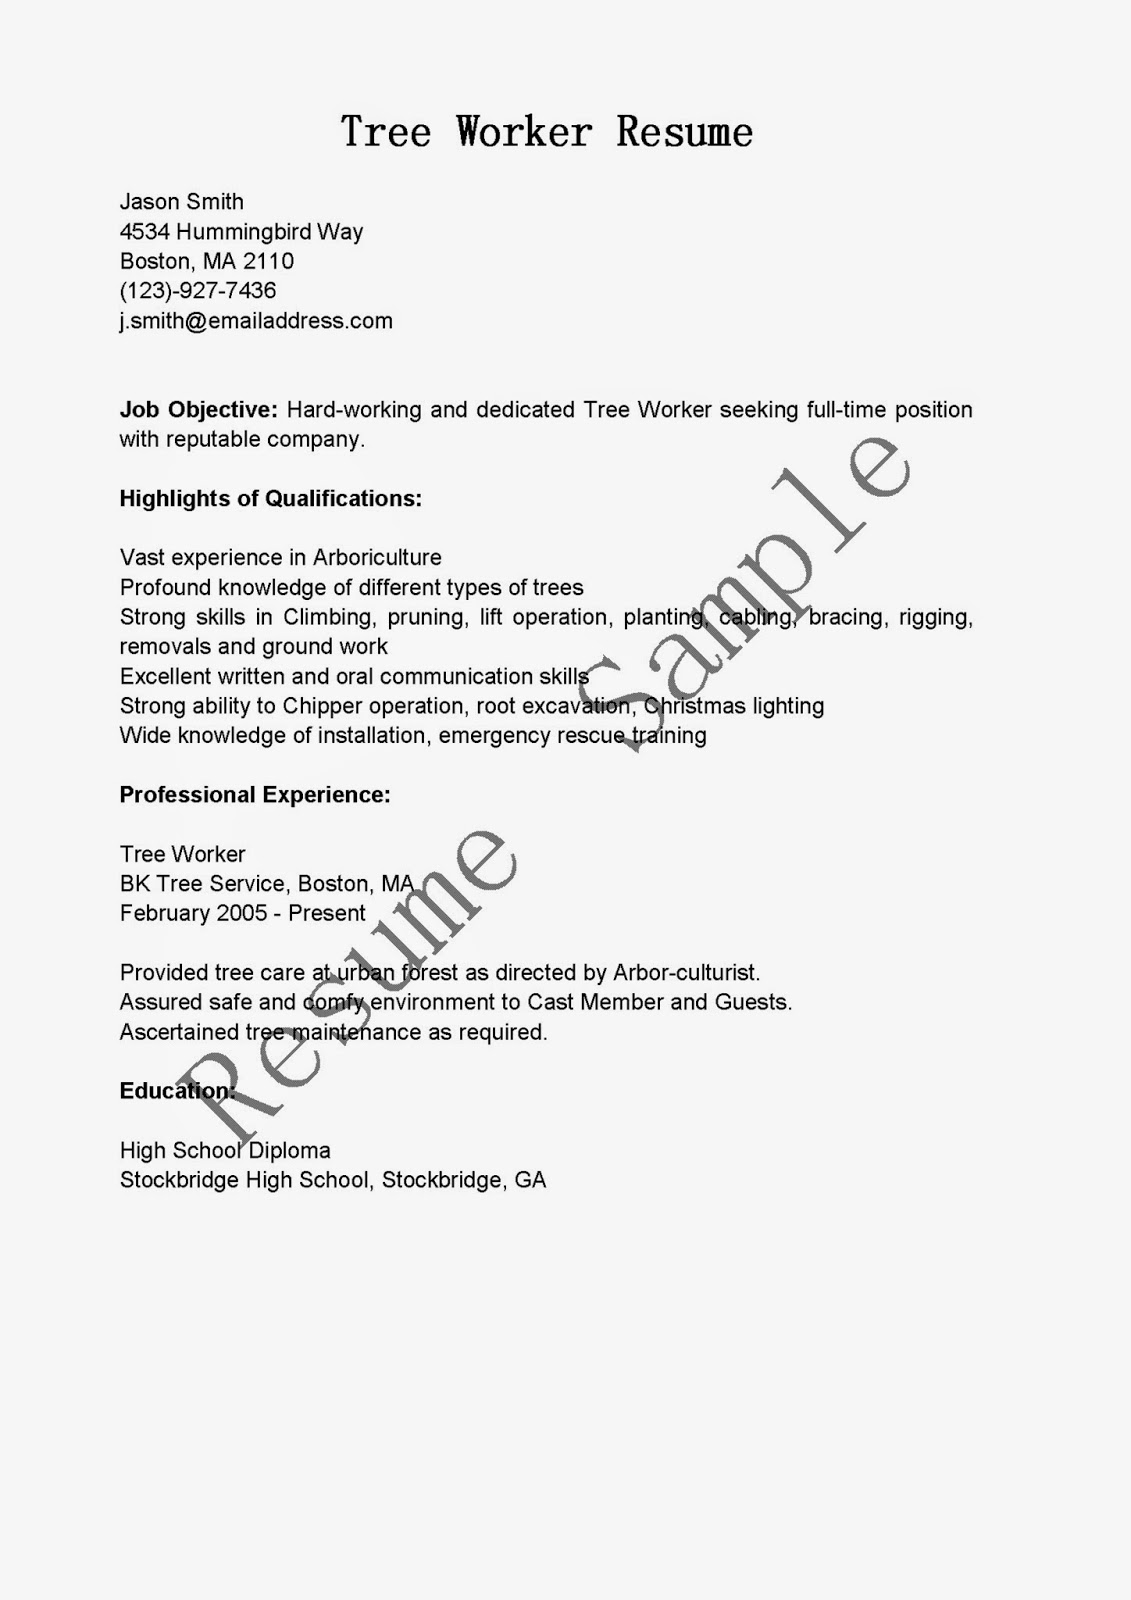 resume samples  tree worker resume sample